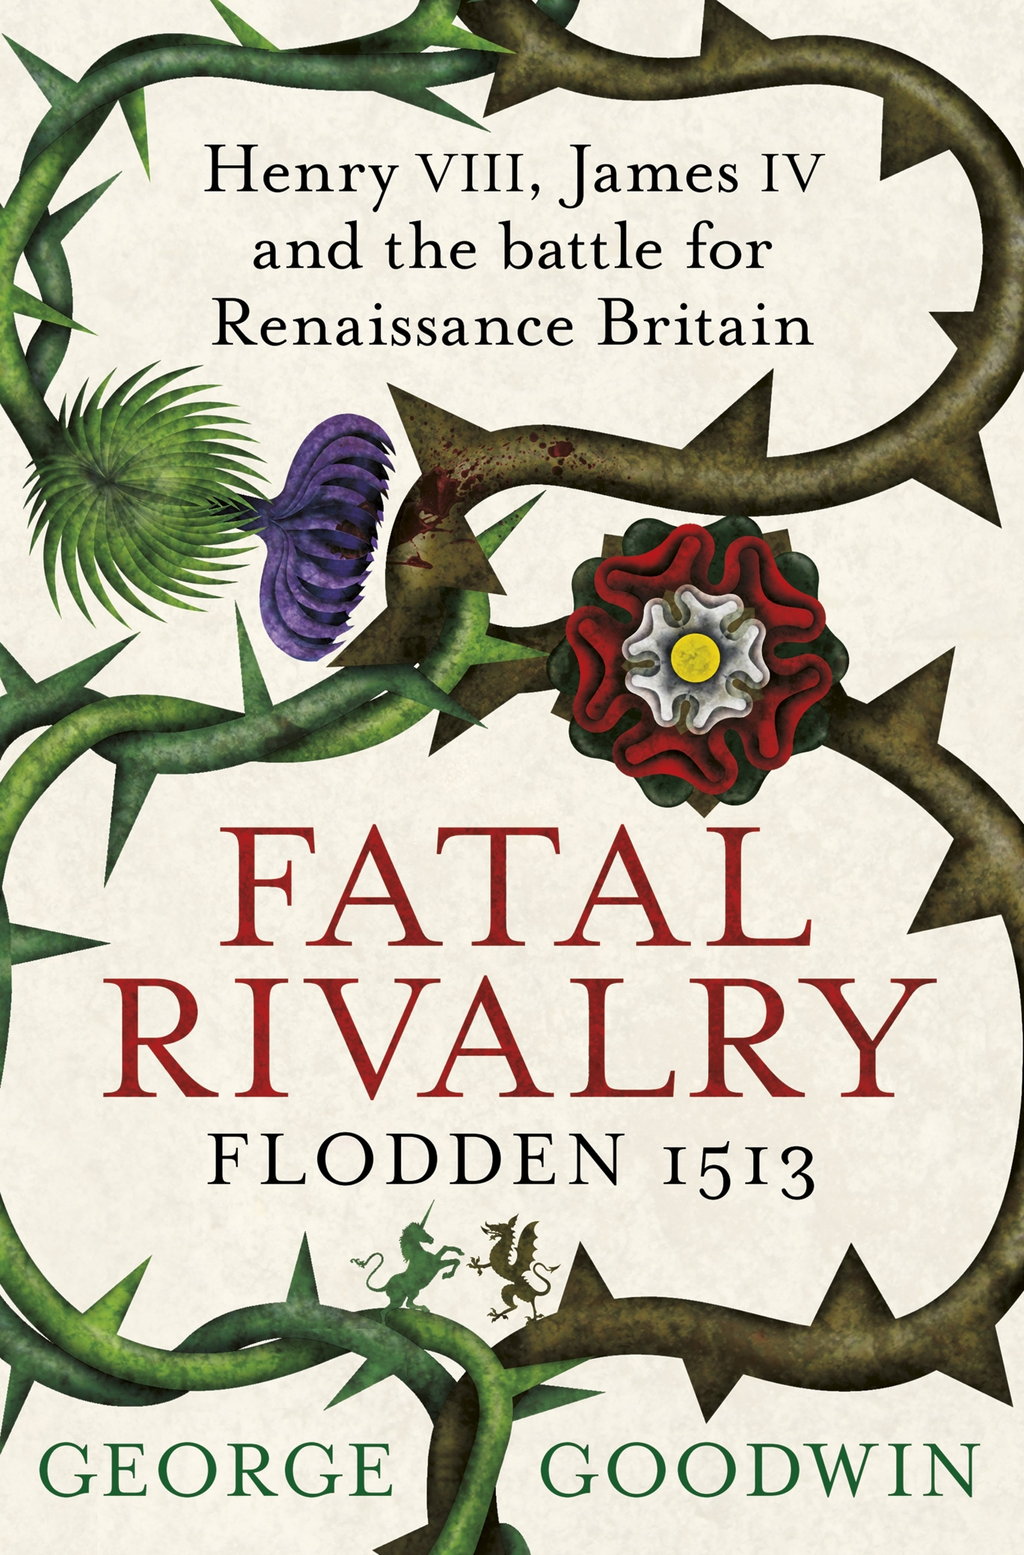 Fatal Rivalry,  Flodden 1513 Henry VIII,  James IV and the battle for Renaissance Britain